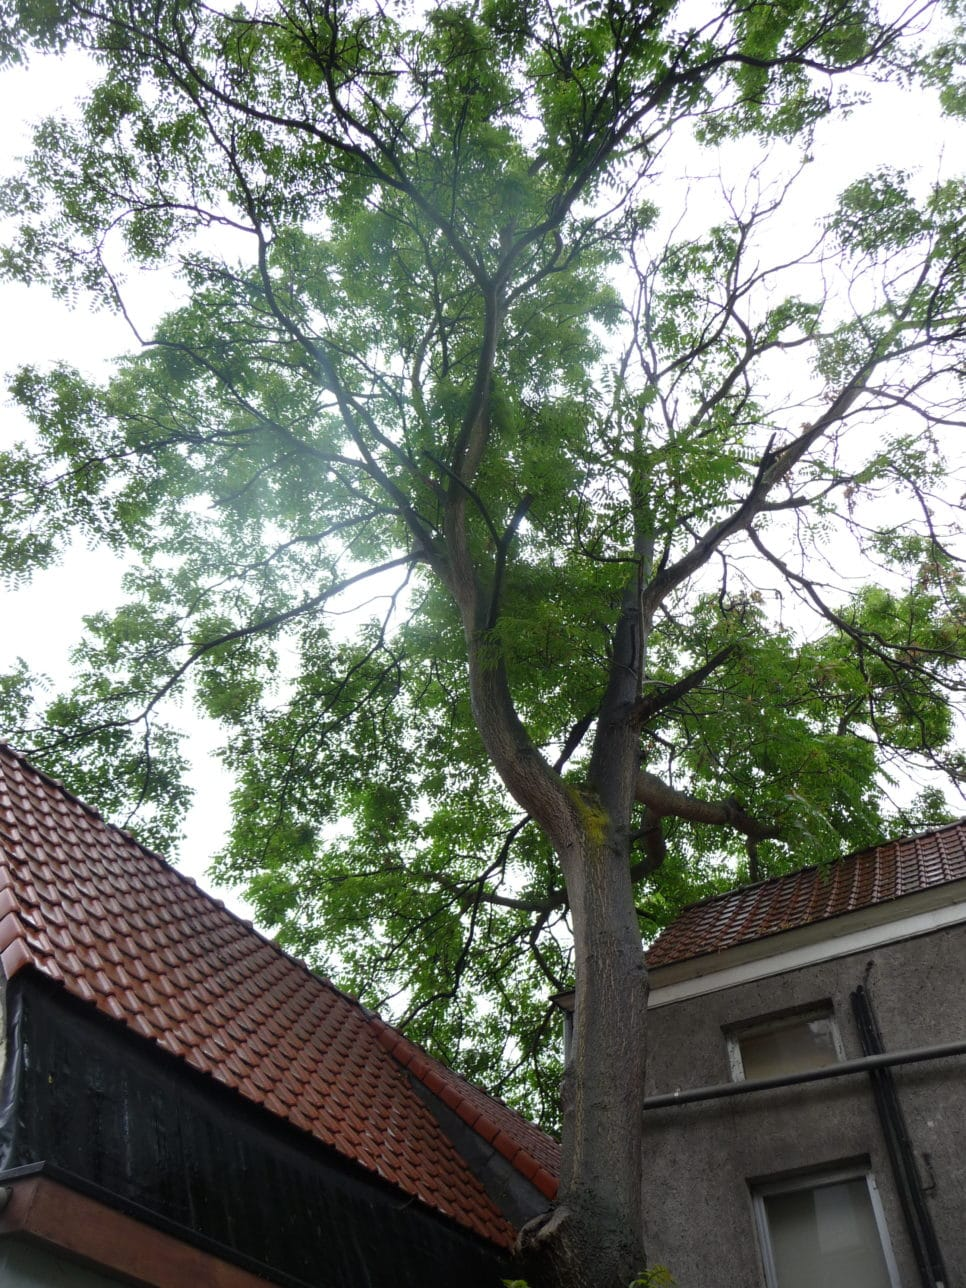 Te grote boom in te kleine tuin demontage Ailanthus